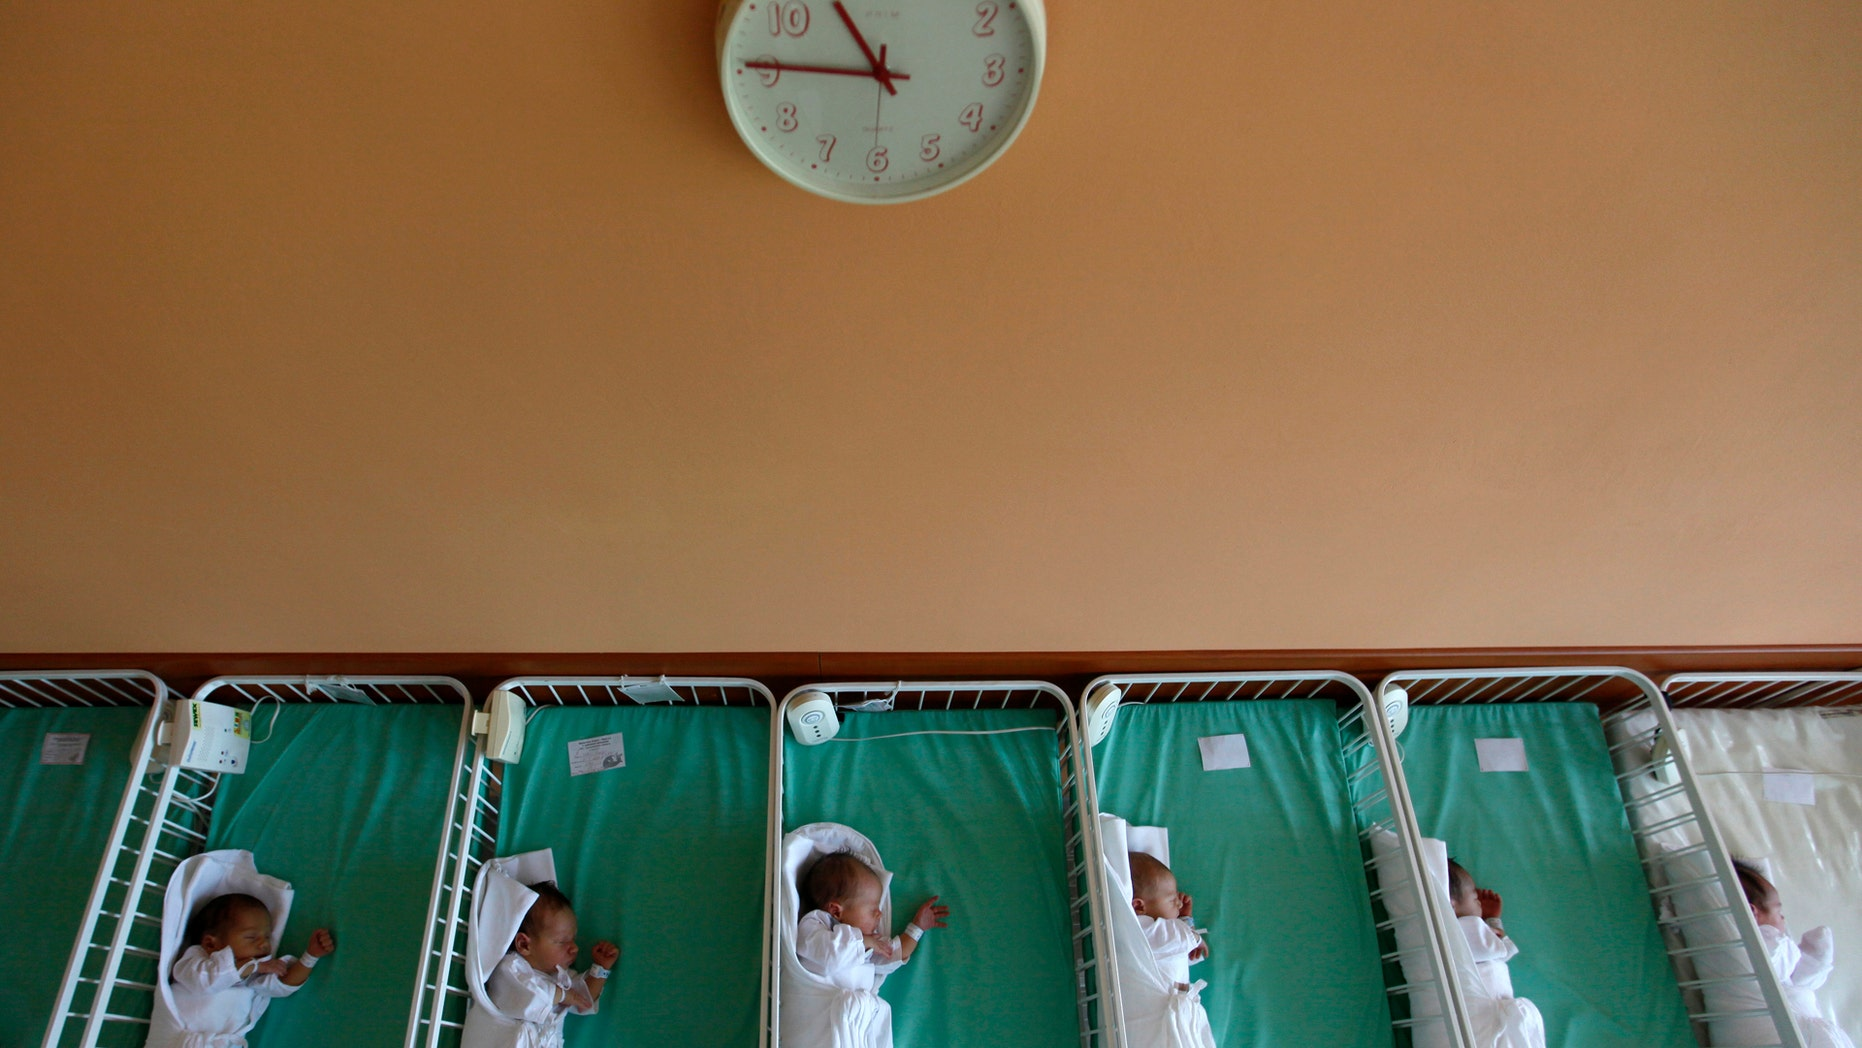 File photo - Newborn babies rest in cots in Kosice, east Slovakia May 25, 2011. (REUTERS/Petr Josek)